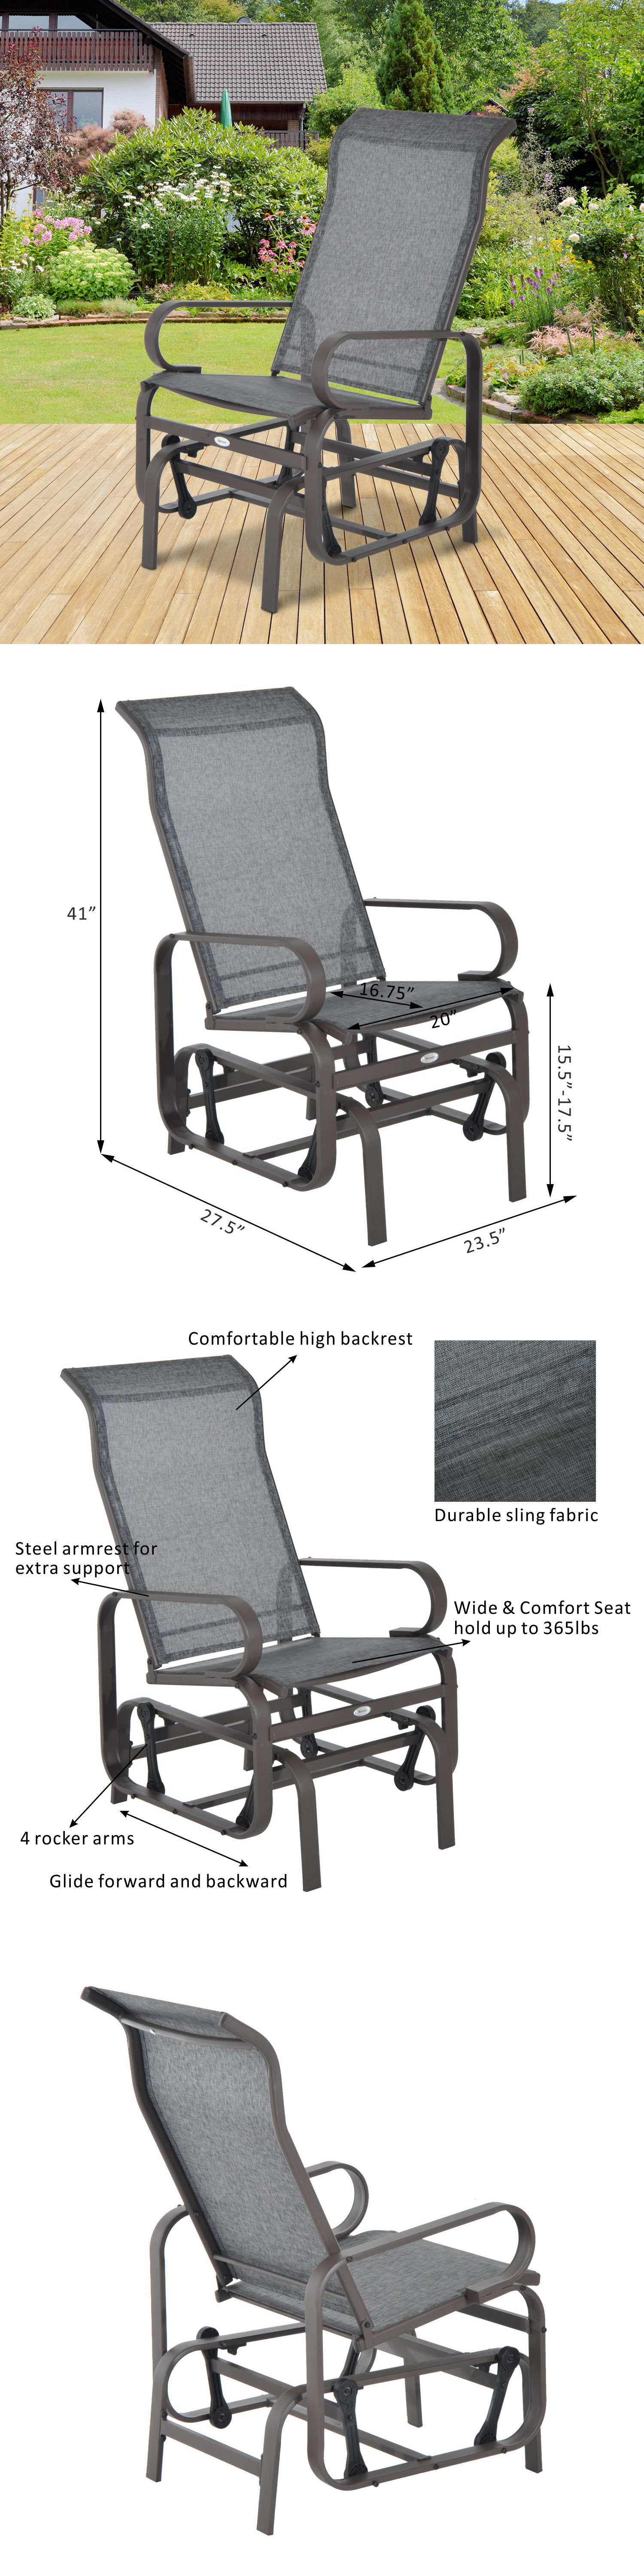 Swings Outsunny Glider Swing Chair Seat Lounger Porch